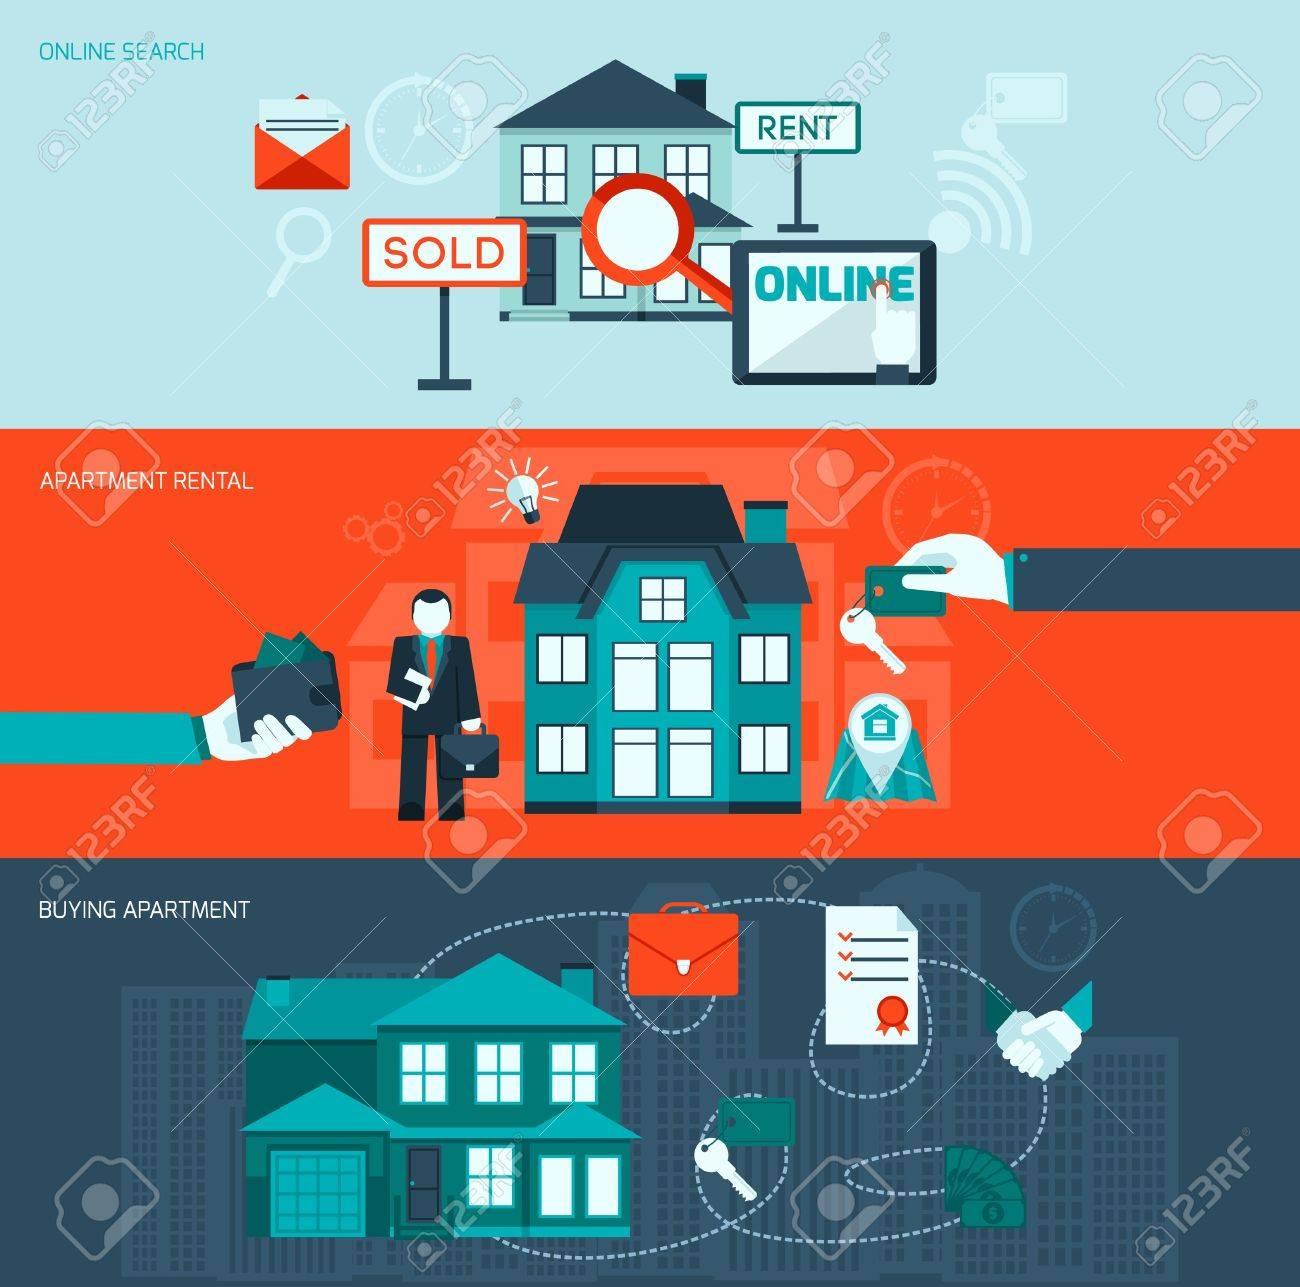 Real Estate Flat Horizontal Banner Set With Online Search Apartment Rental  And Buying Elements Isolated Vector